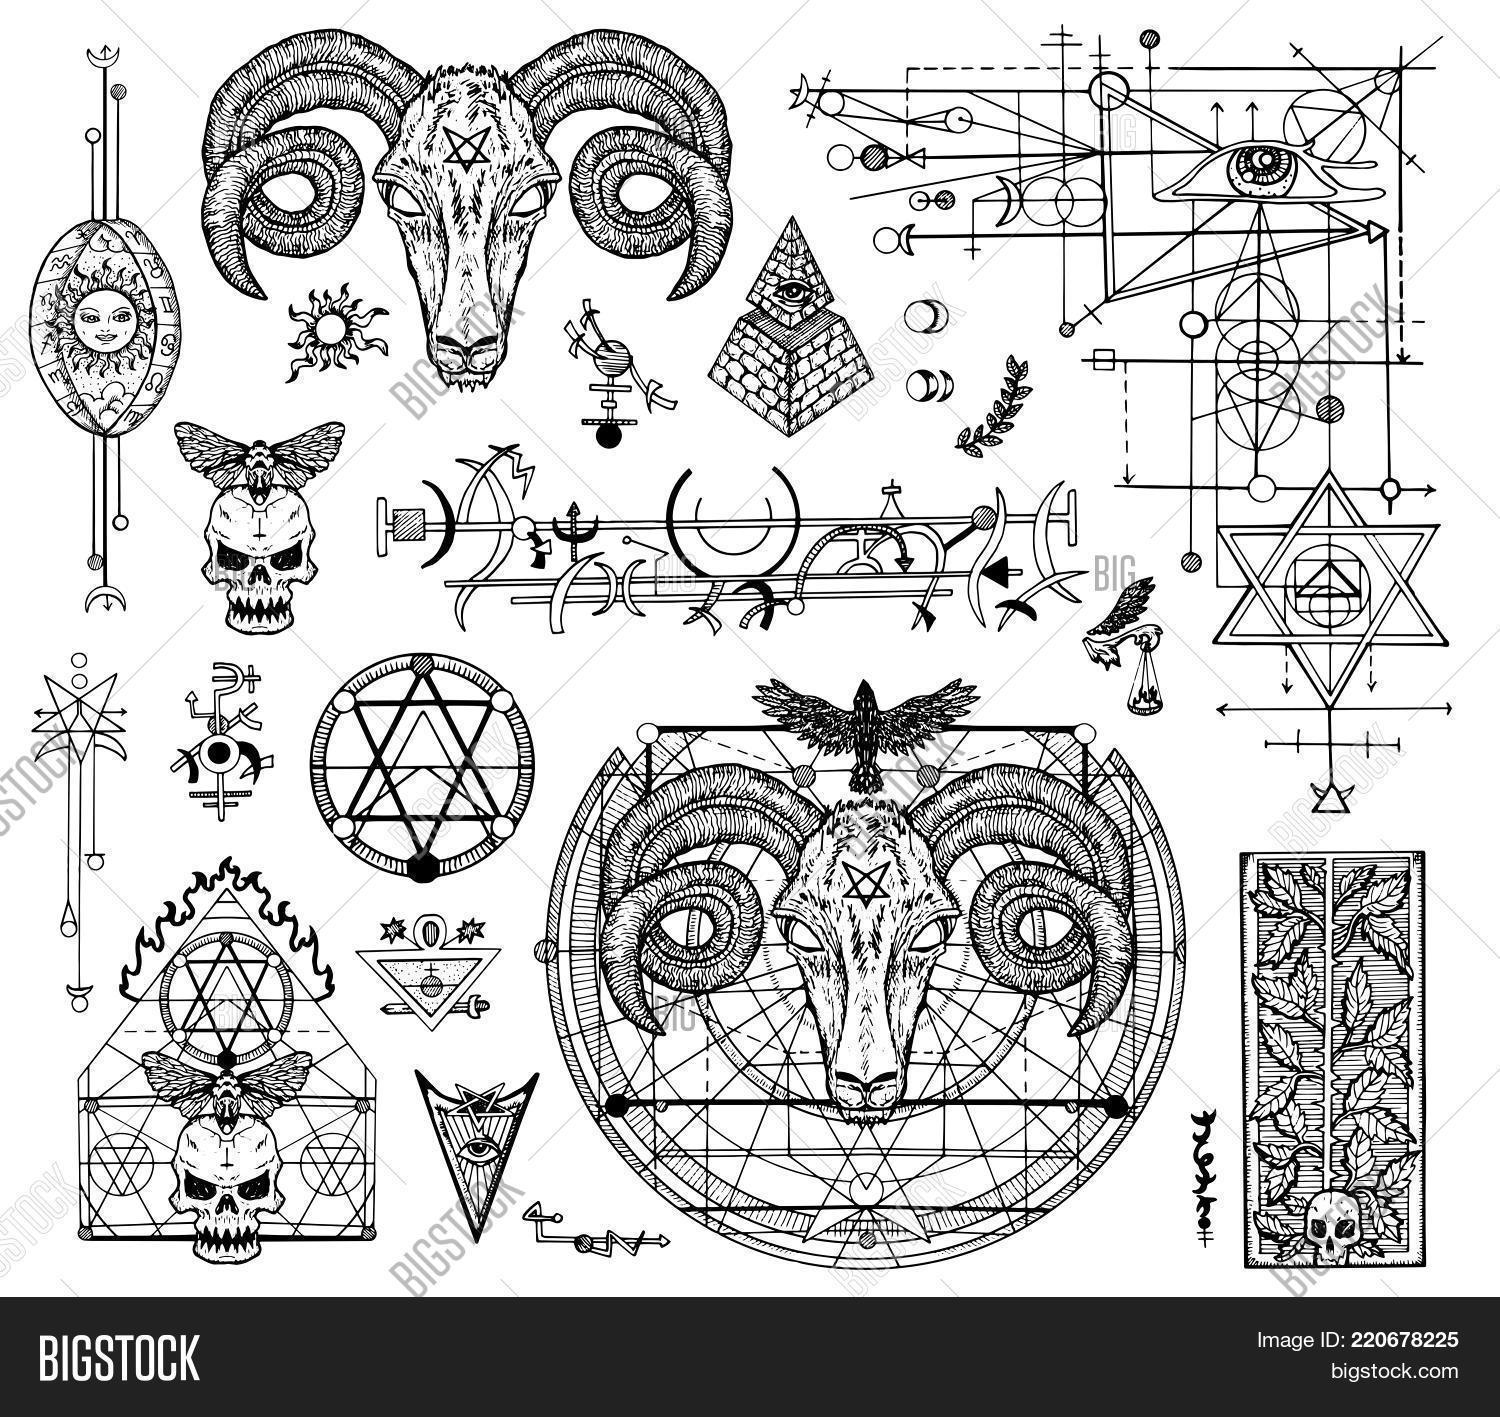 Design Set Graphic Vector Photo Free Trial Bigstock